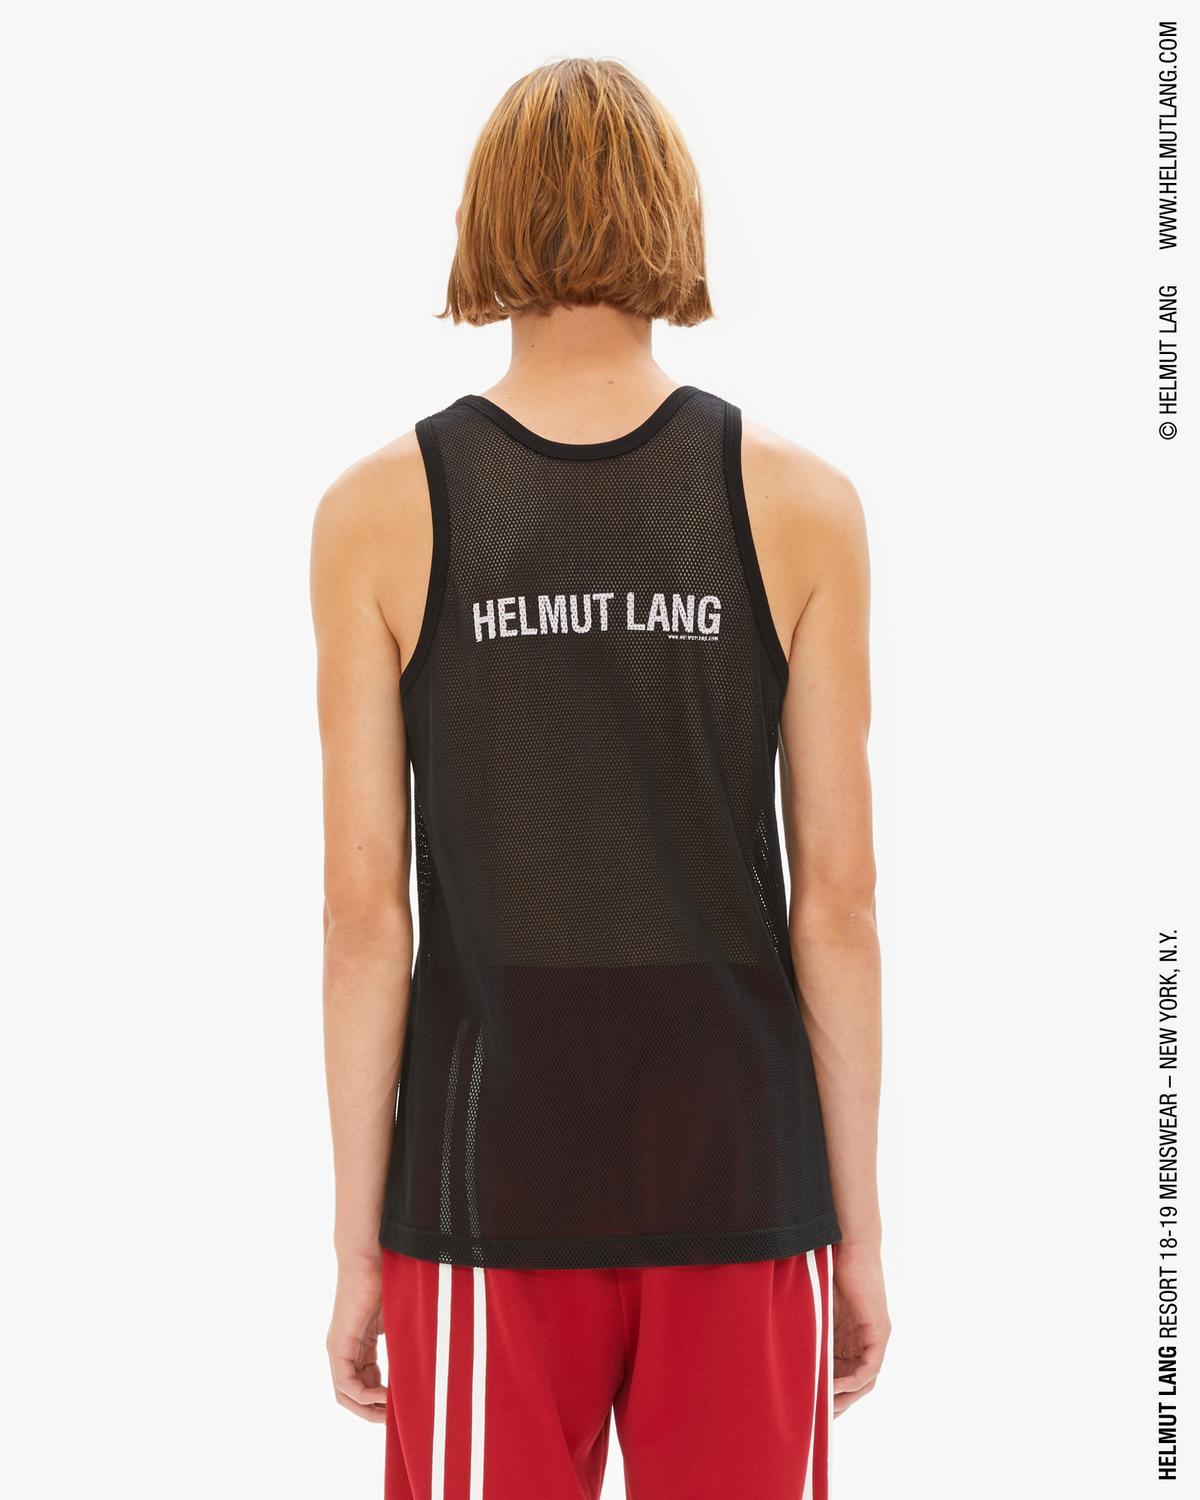 MESH LOGO BACK TANK TOP